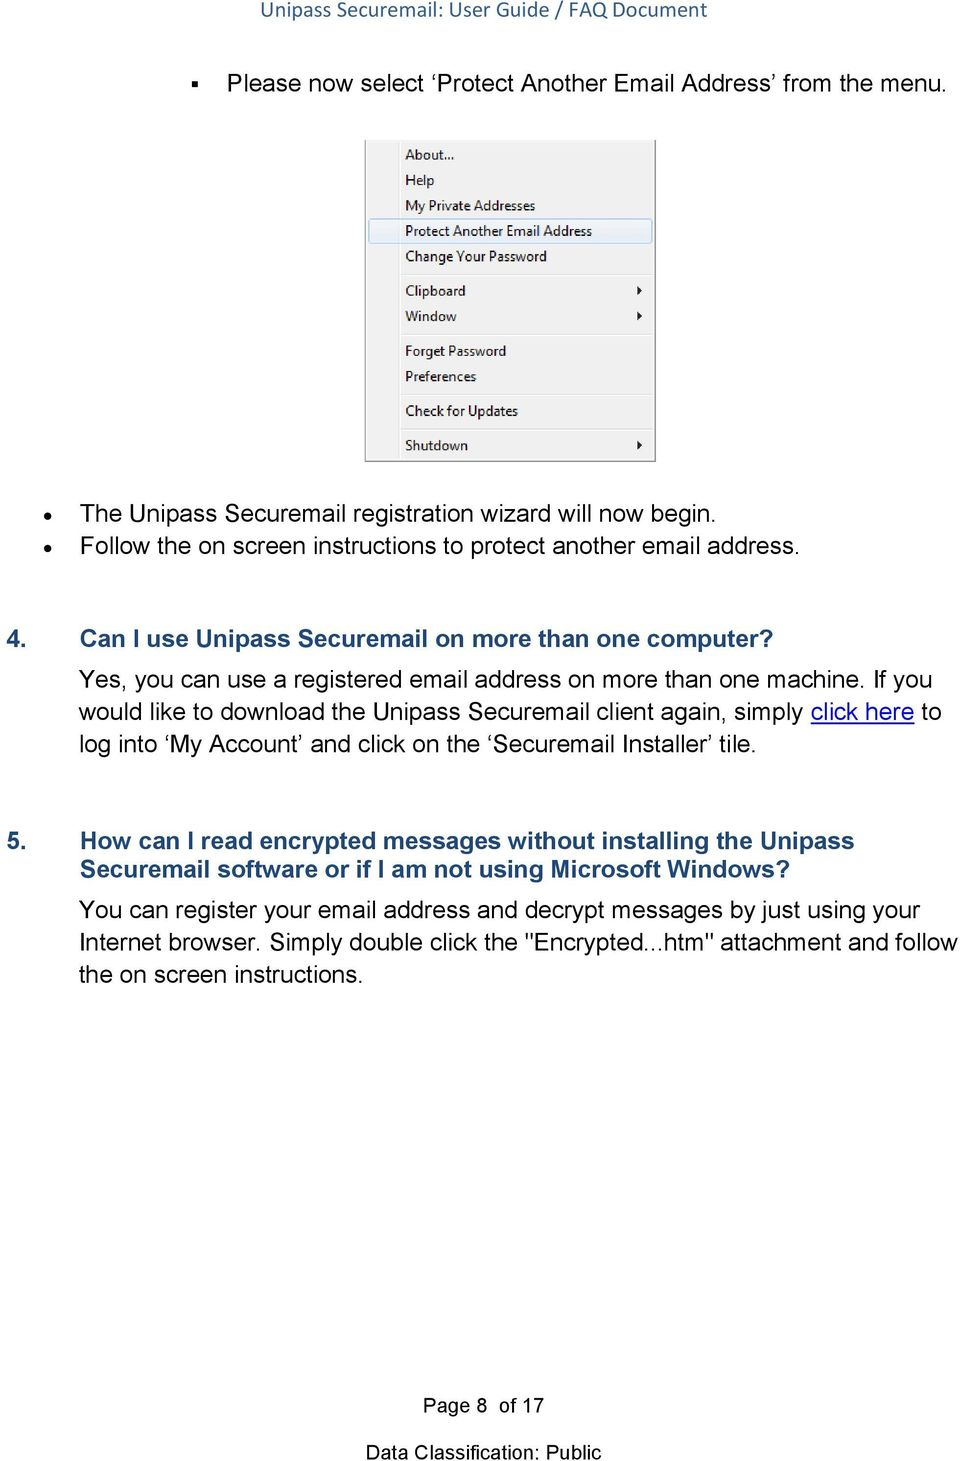 If you would like to download the Unipass Securemail client again, simply click here to log into My Account and click on the Securemail Installer tile. 5.